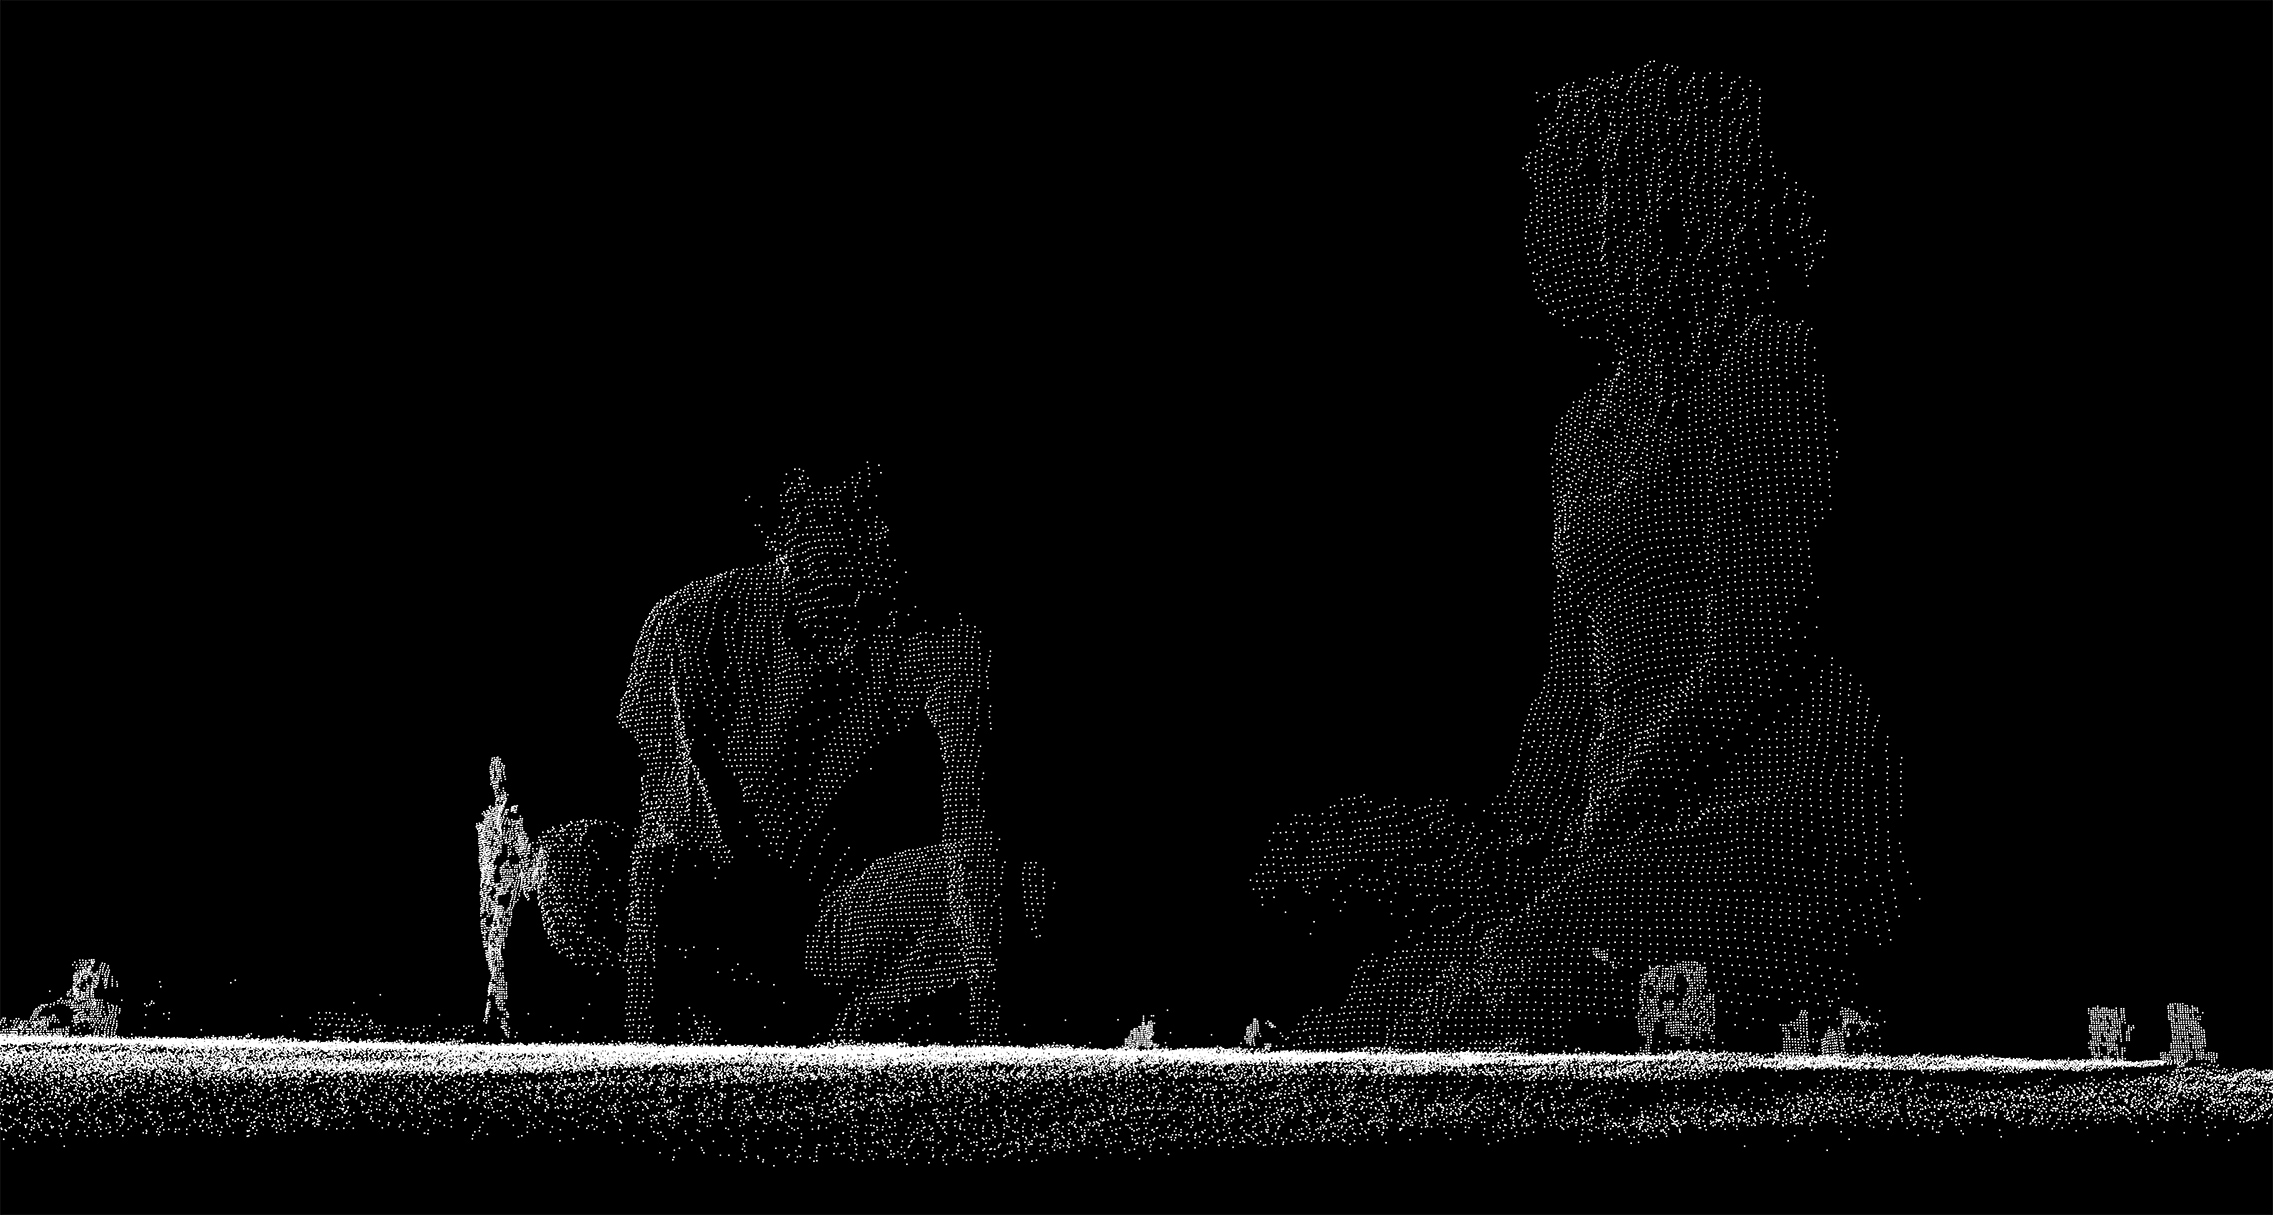 mynd-workshop-central-park-couple9-3D-laser-scanning-point-cloud-new-york.jpg